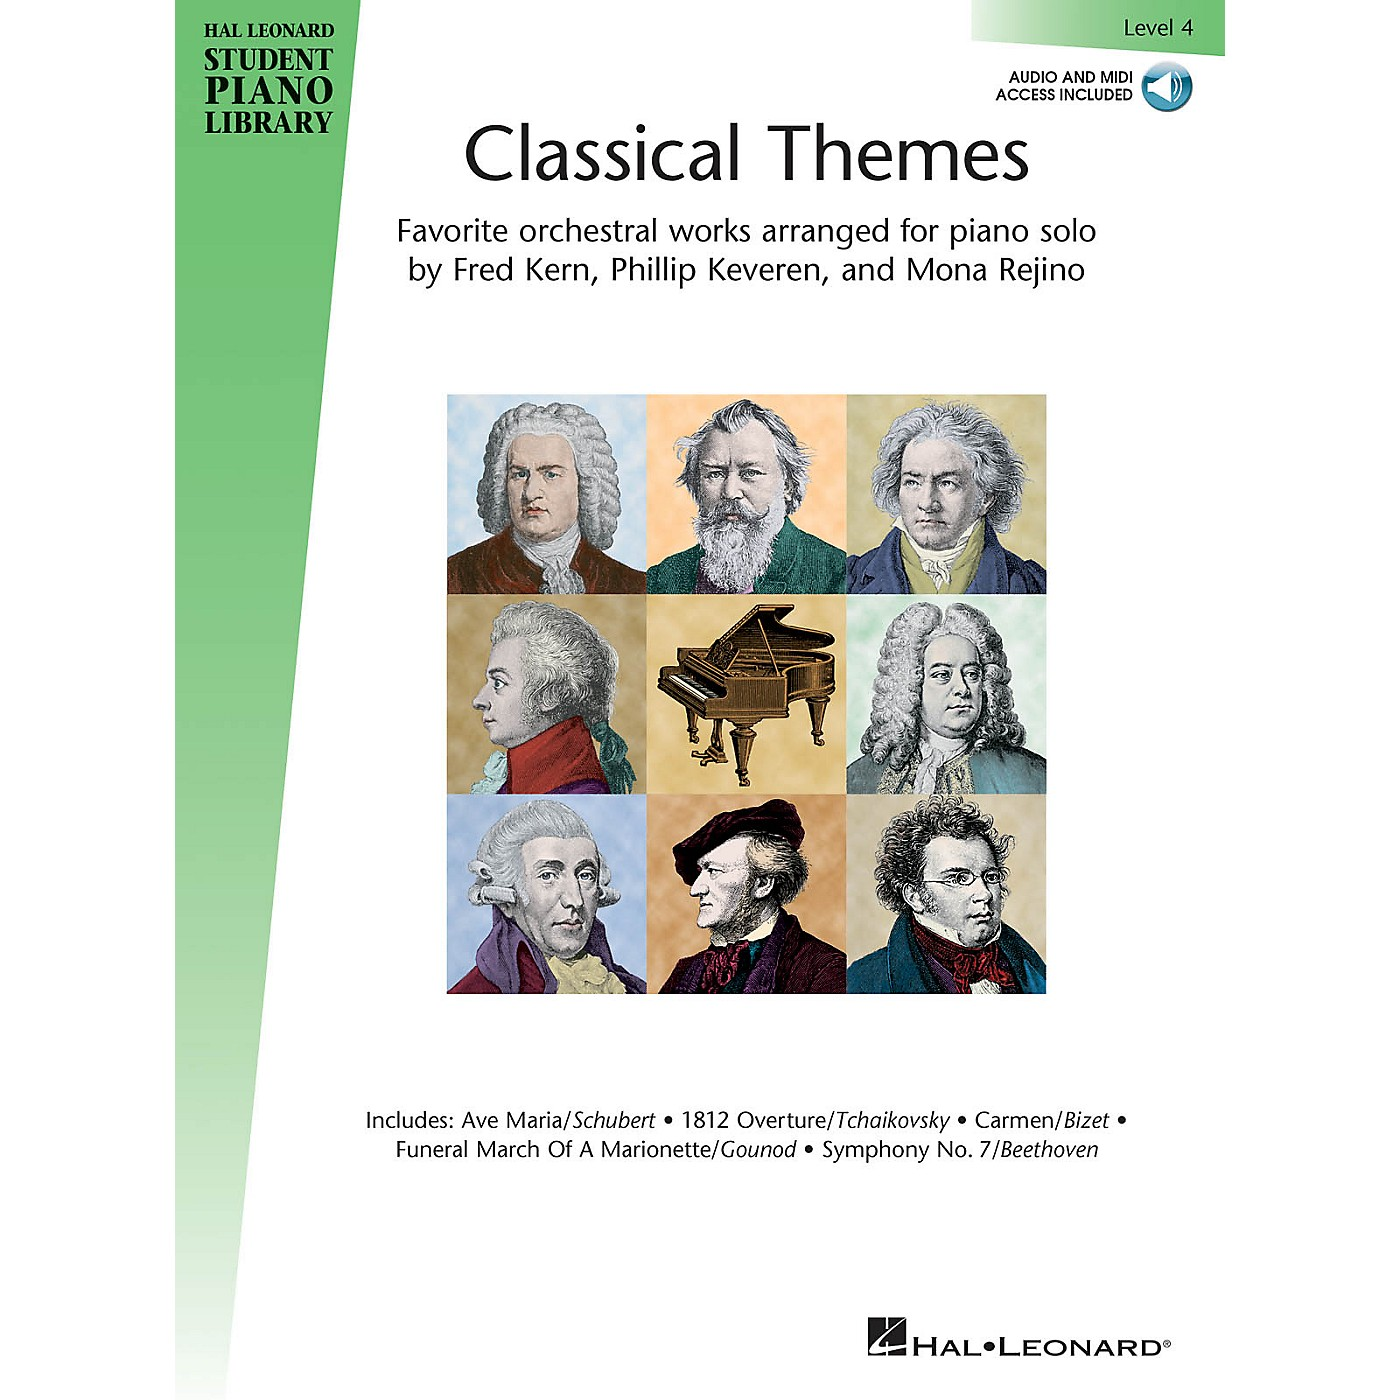 Hal Leonard Classical Themes - Level 4 Piano Library Series Book Audio Online thumbnail